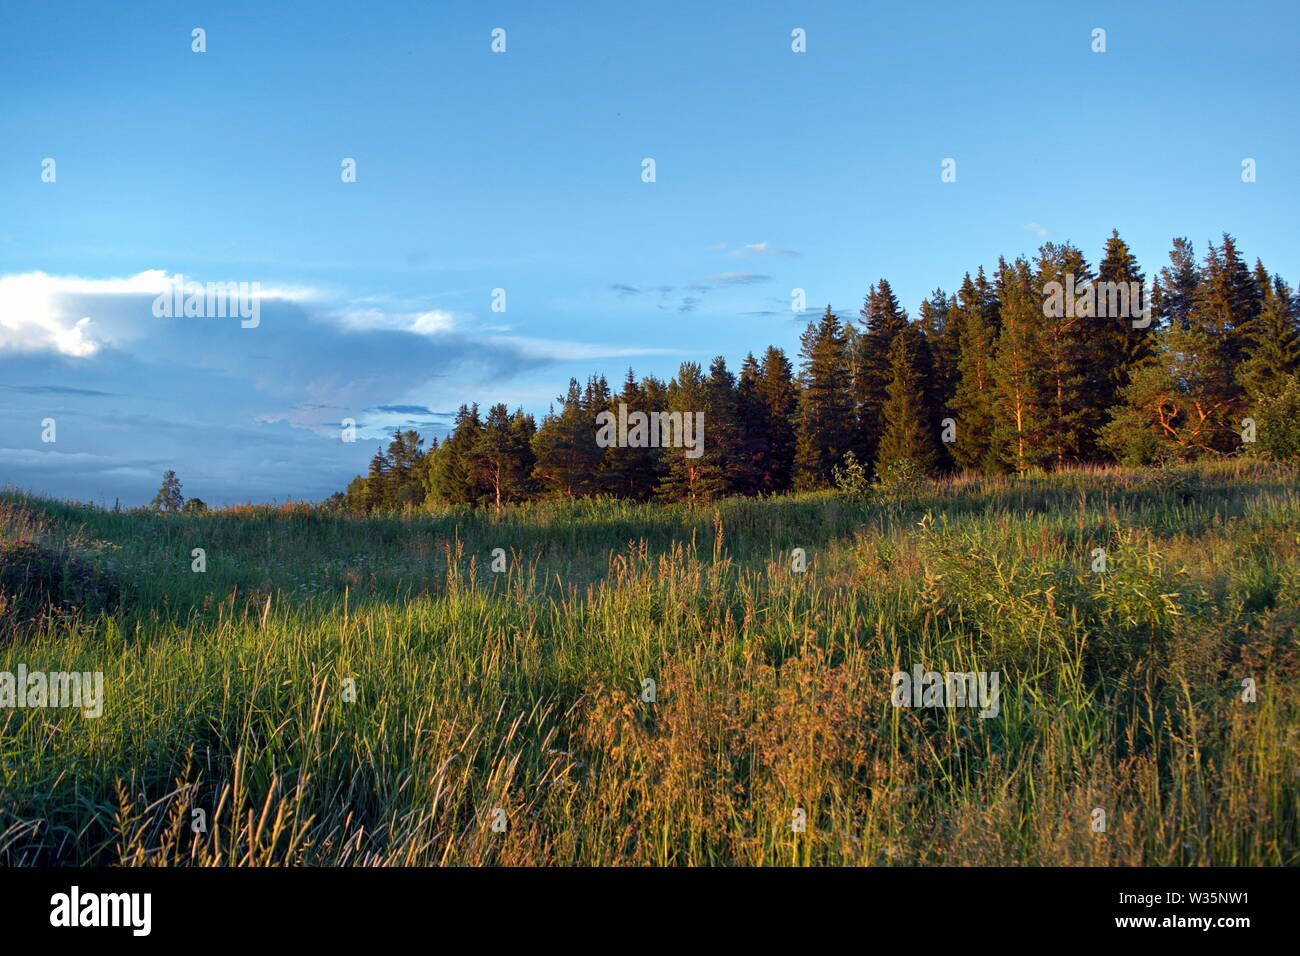 Summer meadow landscape with green grass and wild flowers on the background of a forest, sky and mountains. - Stock Image